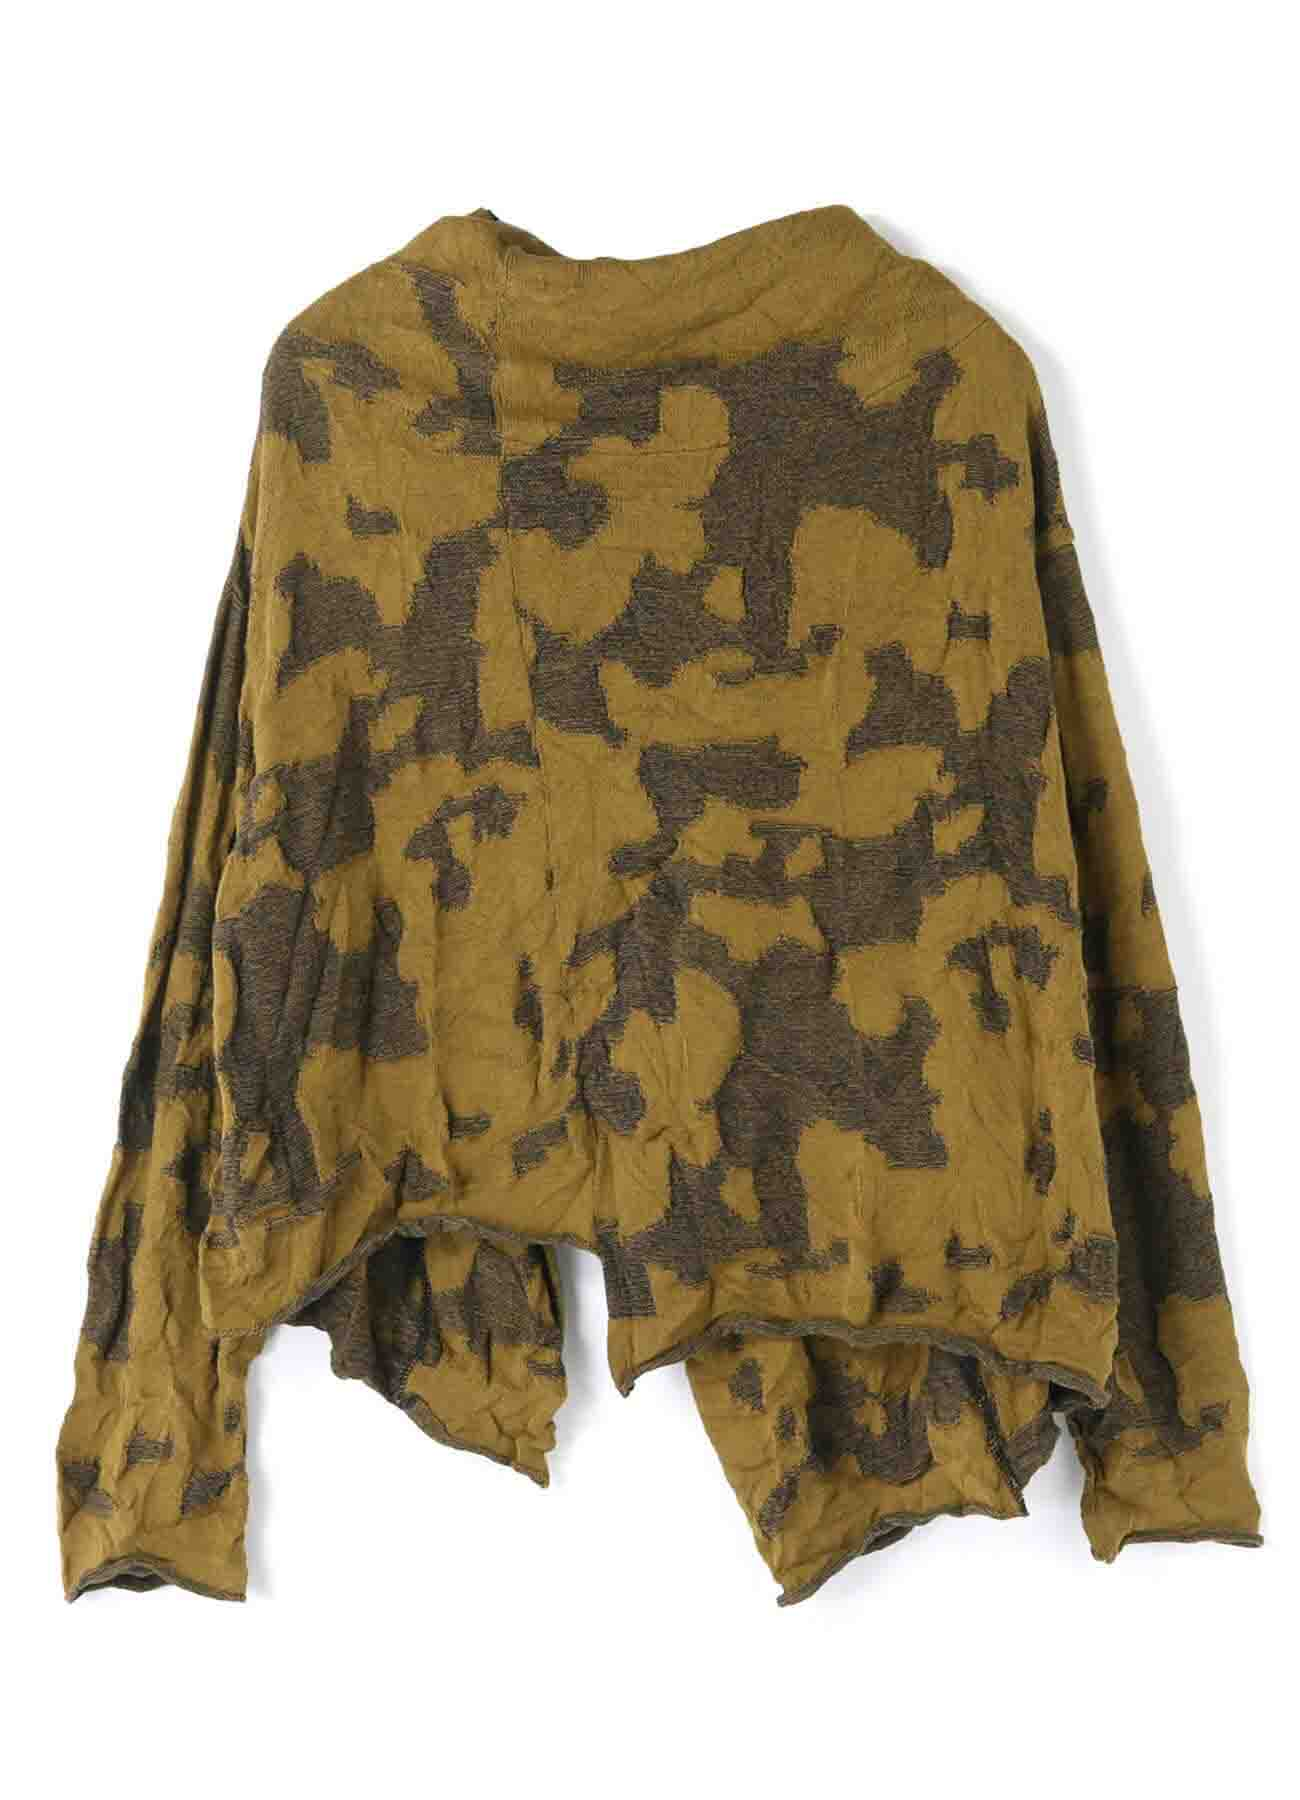 CAMOFLAGE LINKS OFF NECK BUTTON CARDIGAN